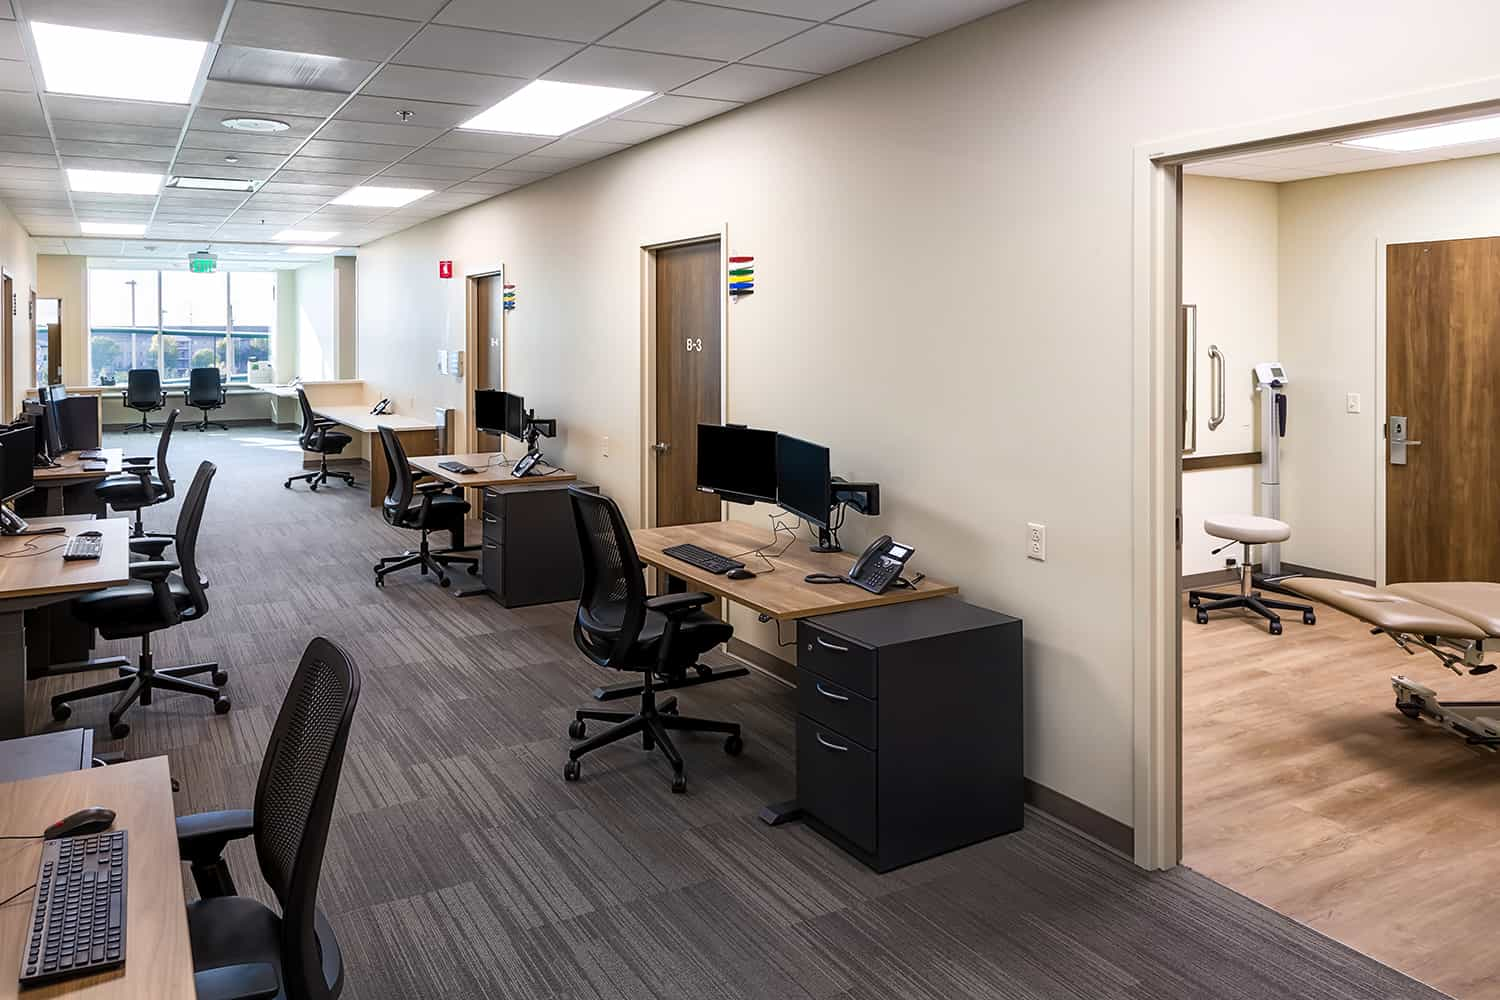 View of an interior staff core, with open workstations and double-loaded exam room access.